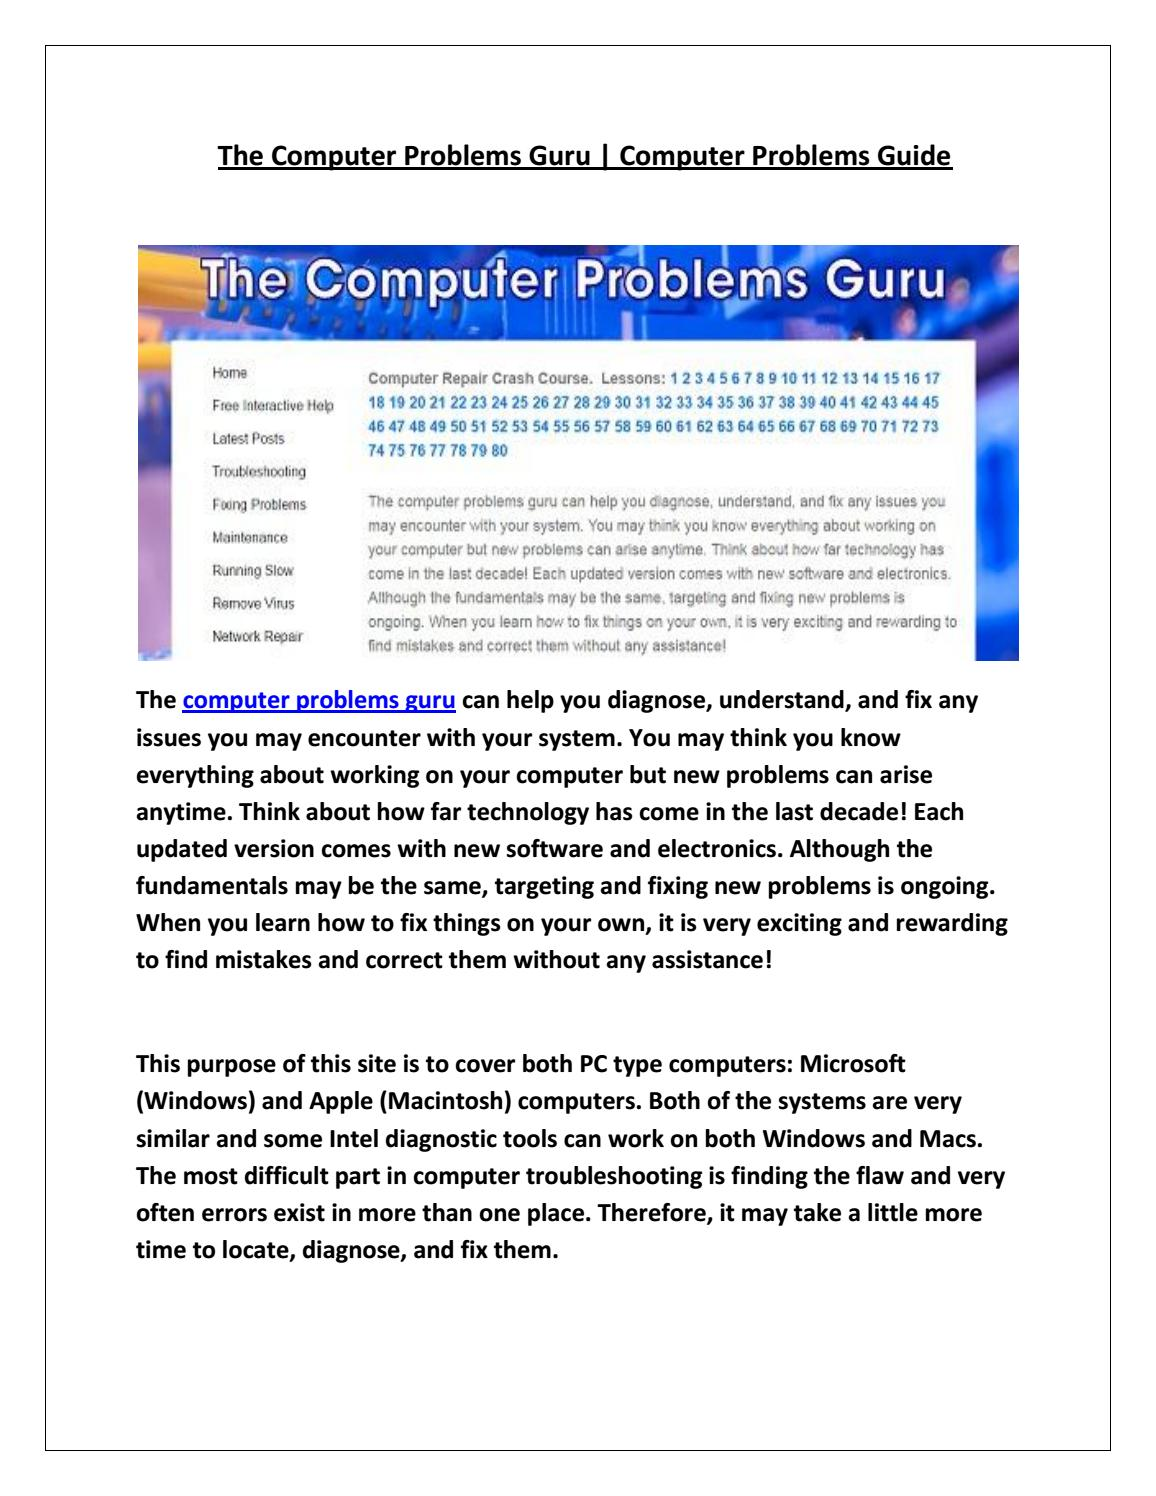 The computer problems guru by davenicknelson - issuu